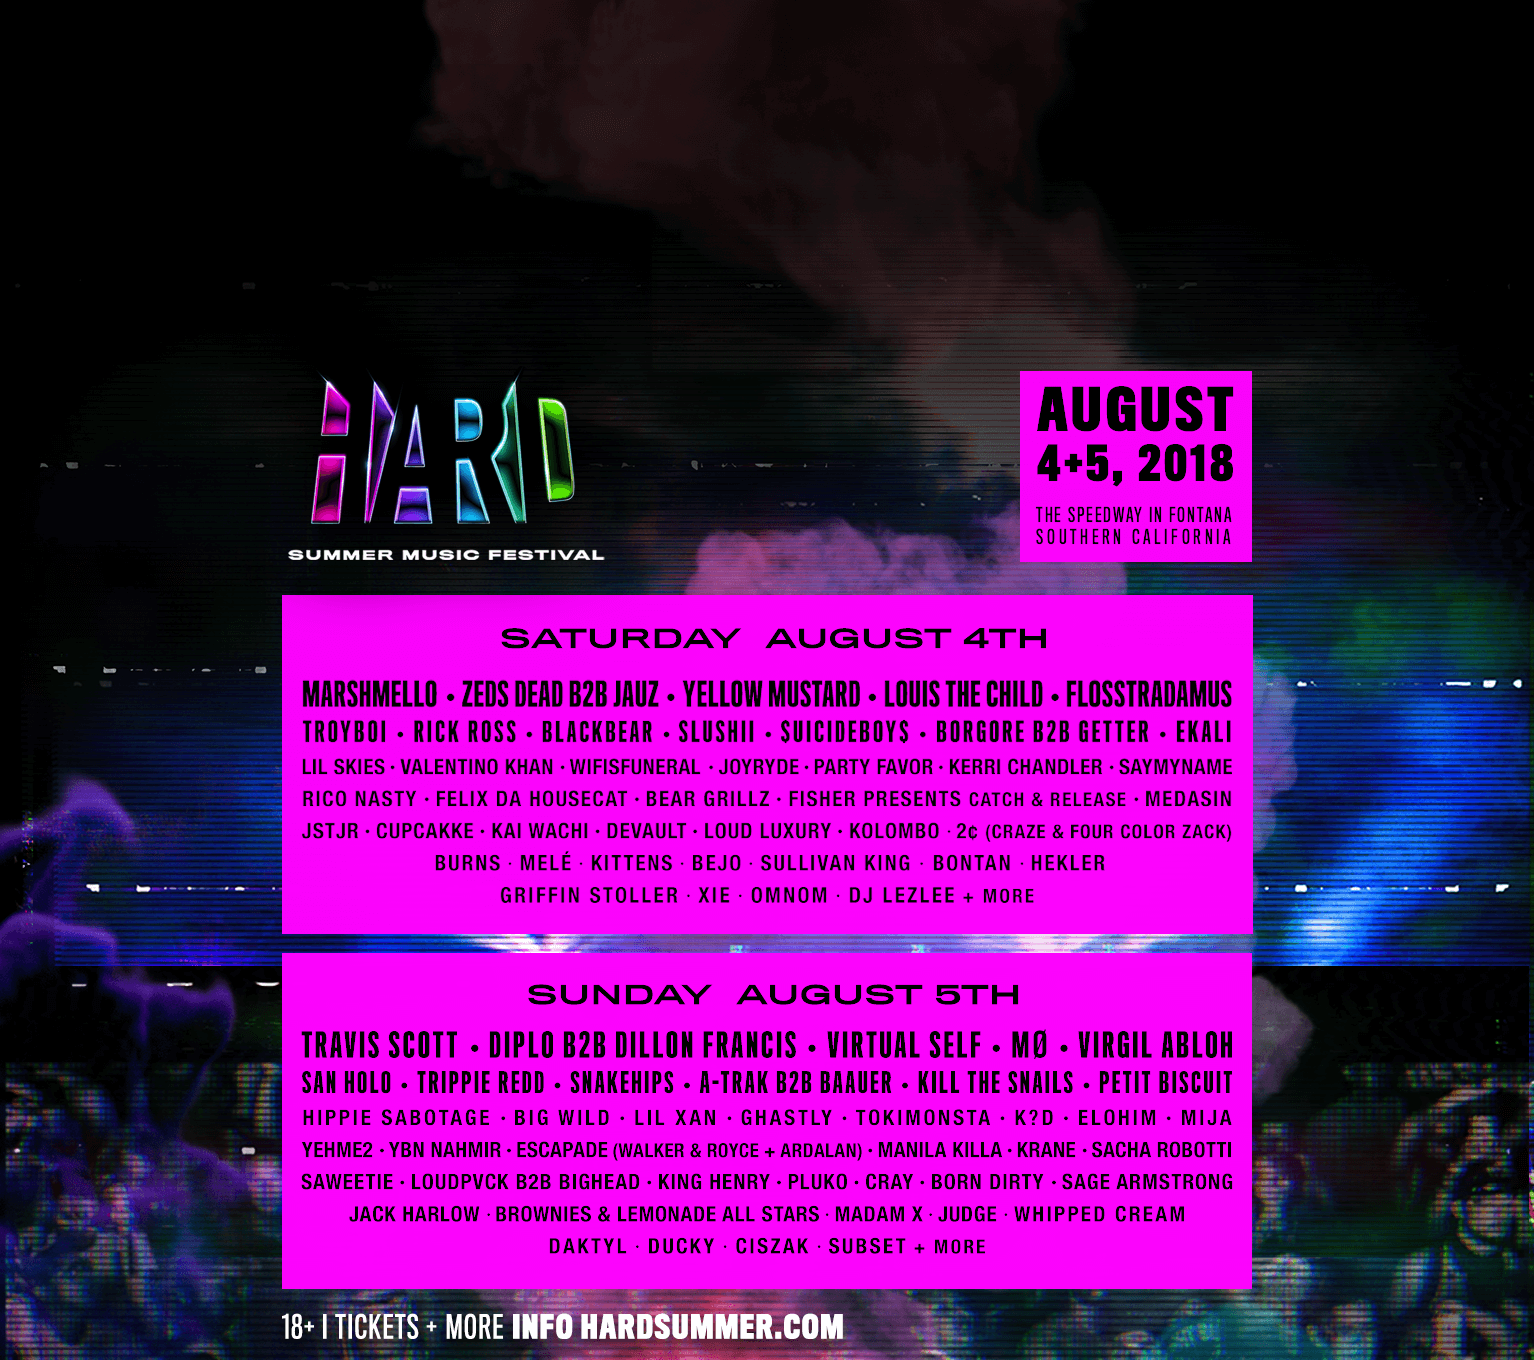 Hard Summer Drops Unique 2018 Lineup with Hilarious Trailer